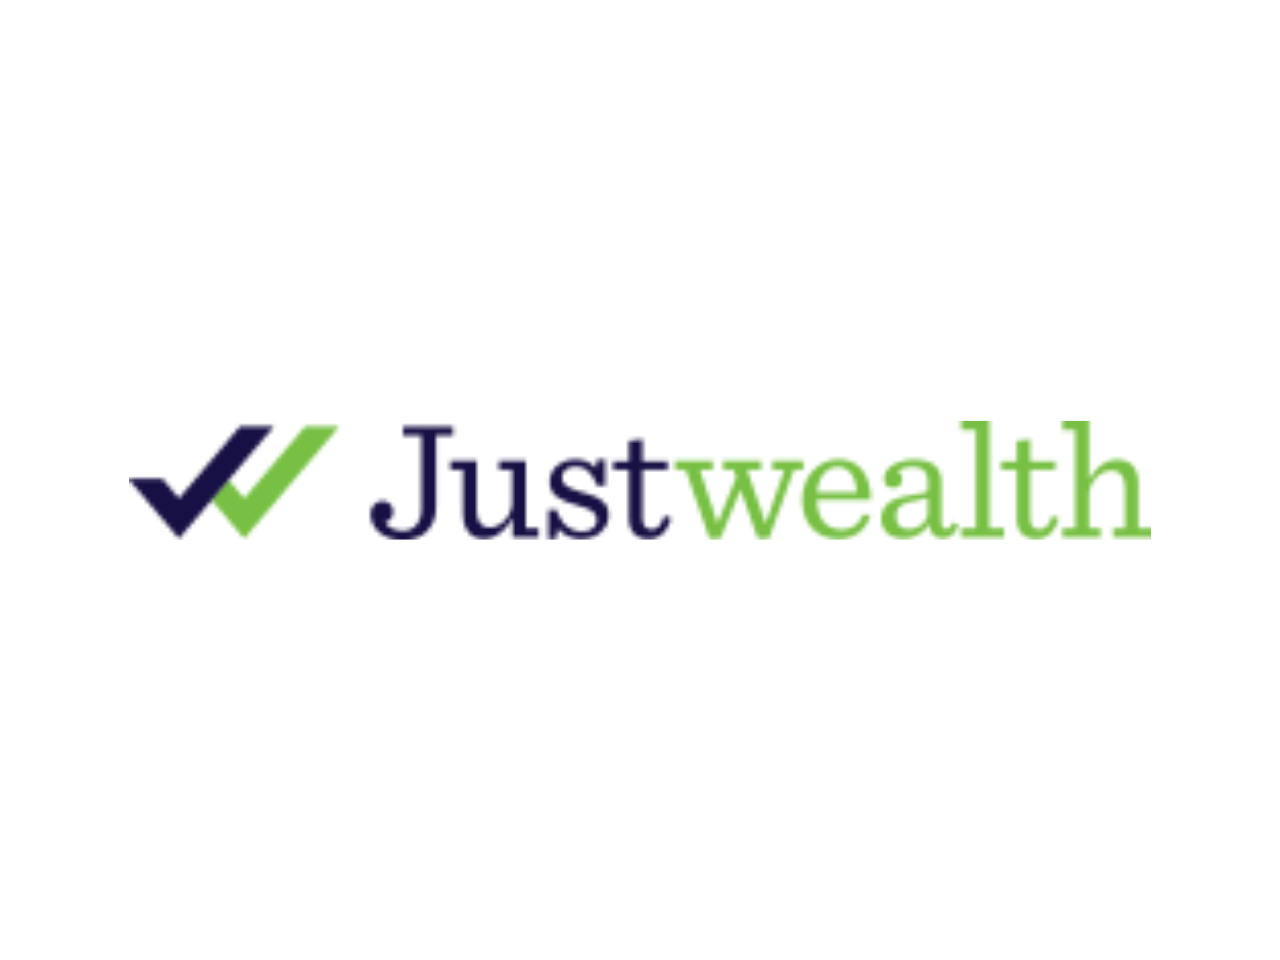 Justwealth Review